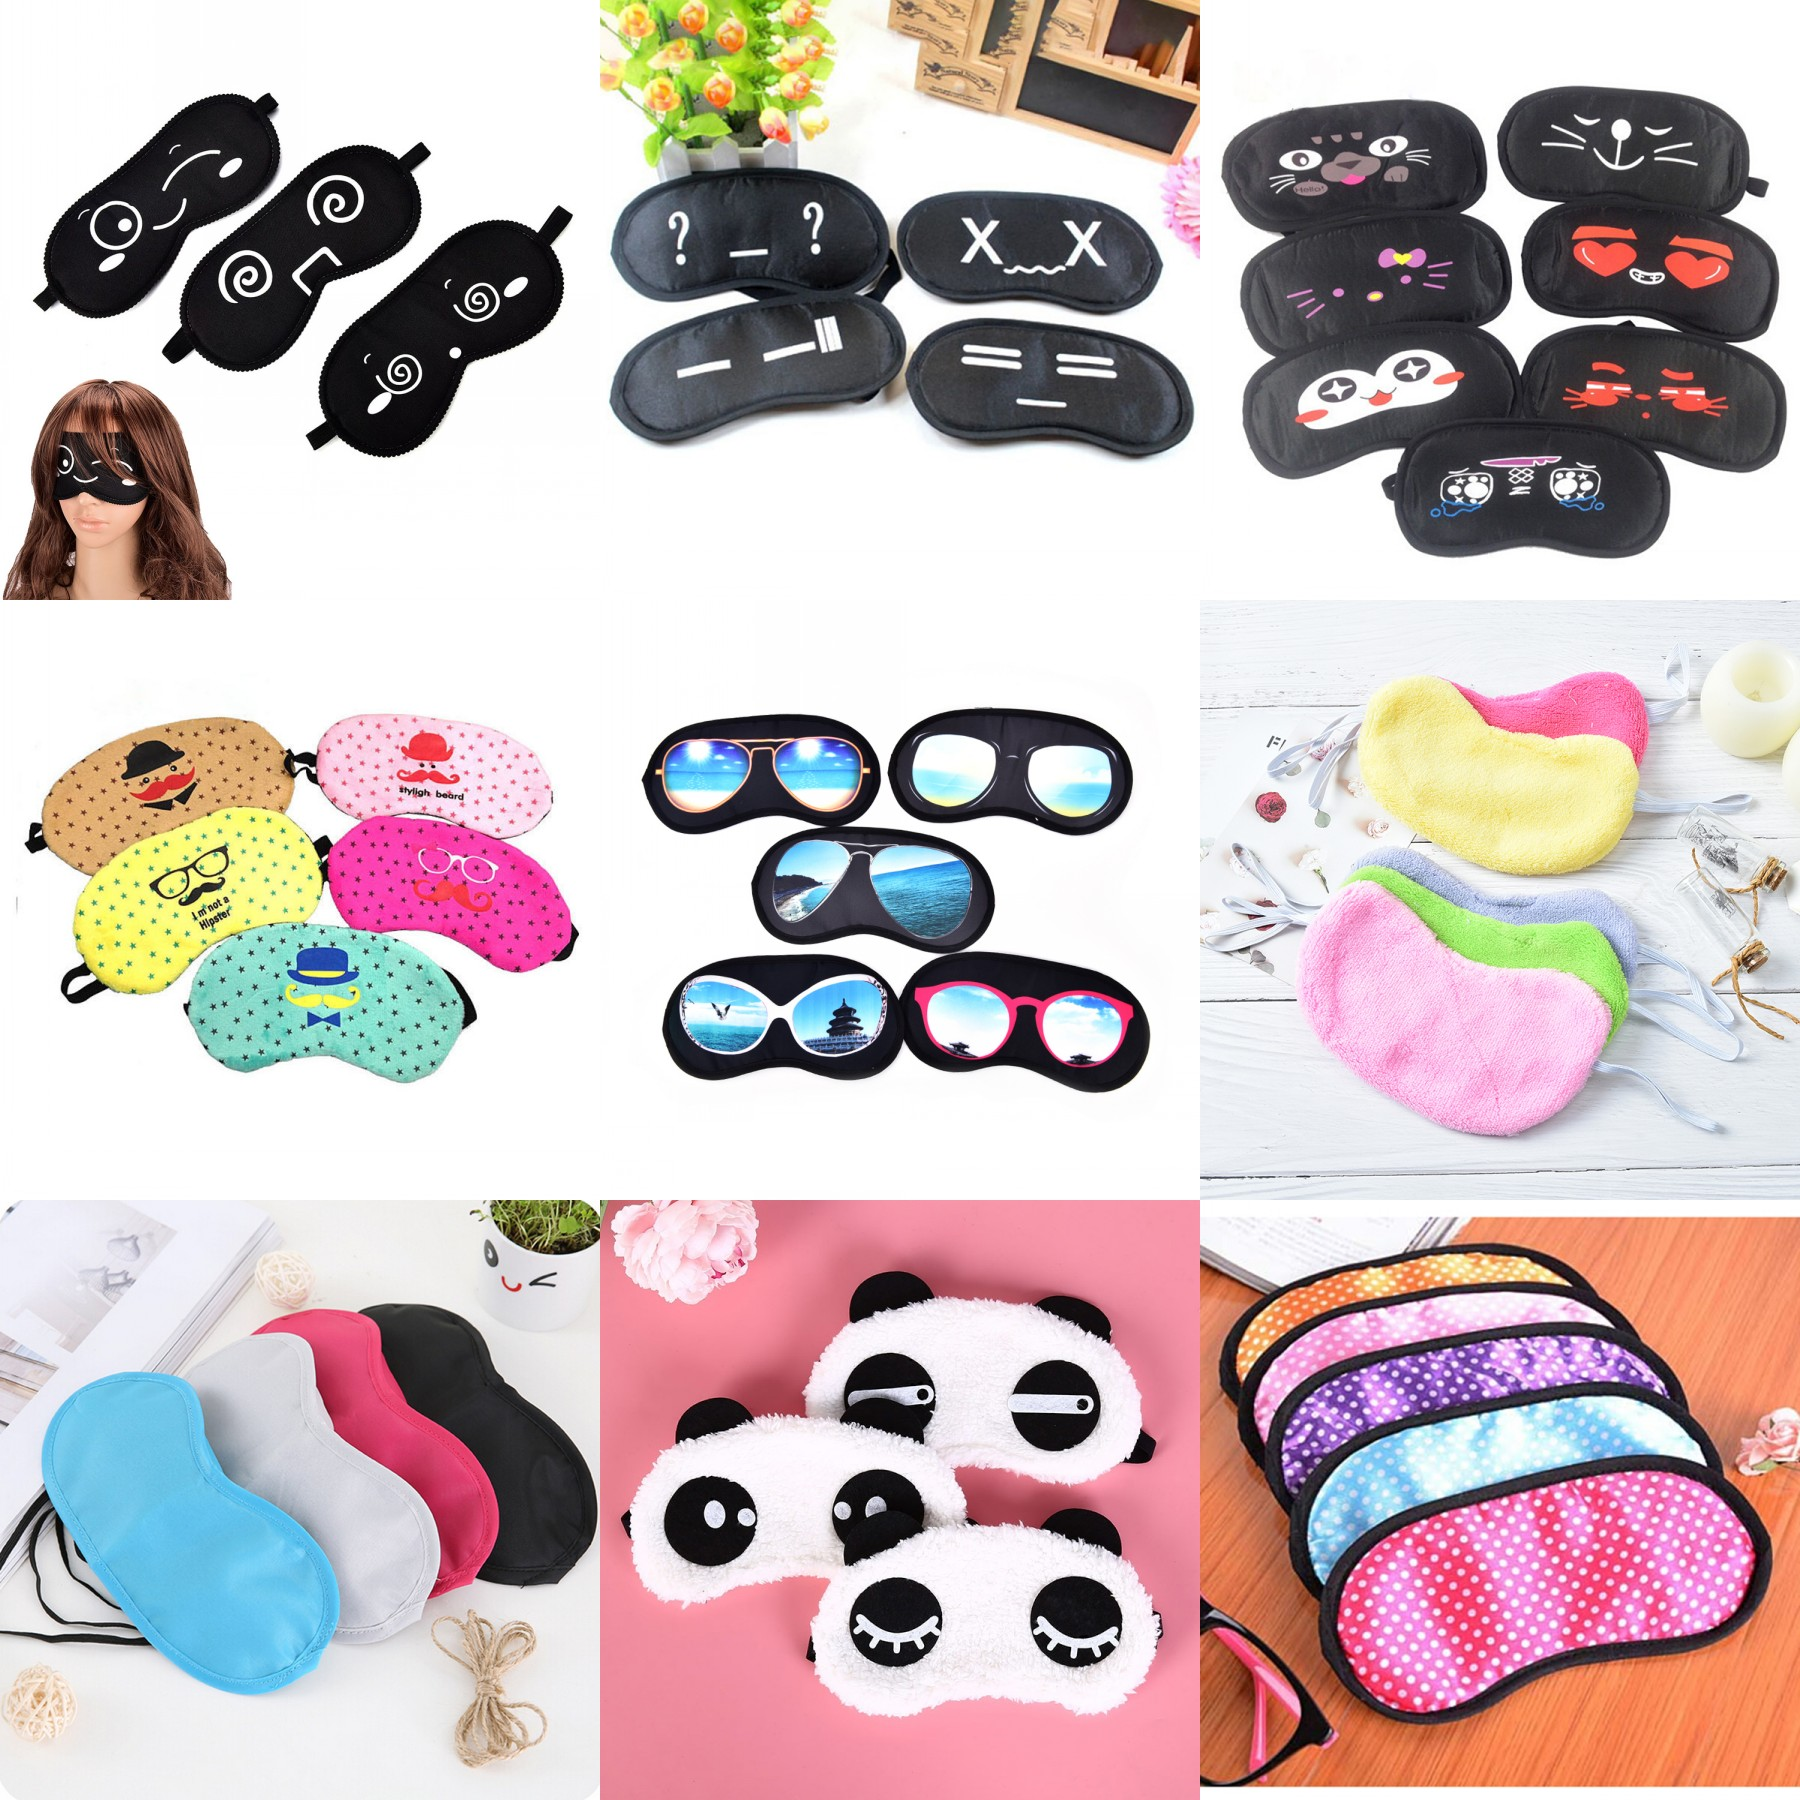 1pc Travel Sleeping Eye Mask Black Eye Shade Sleep Mask Black Mask Bandage On Eyes For Sleeping Emotion Sleep Mask Gift Curing Cough And Facilitating Expectoration And Relieving Hoarseness